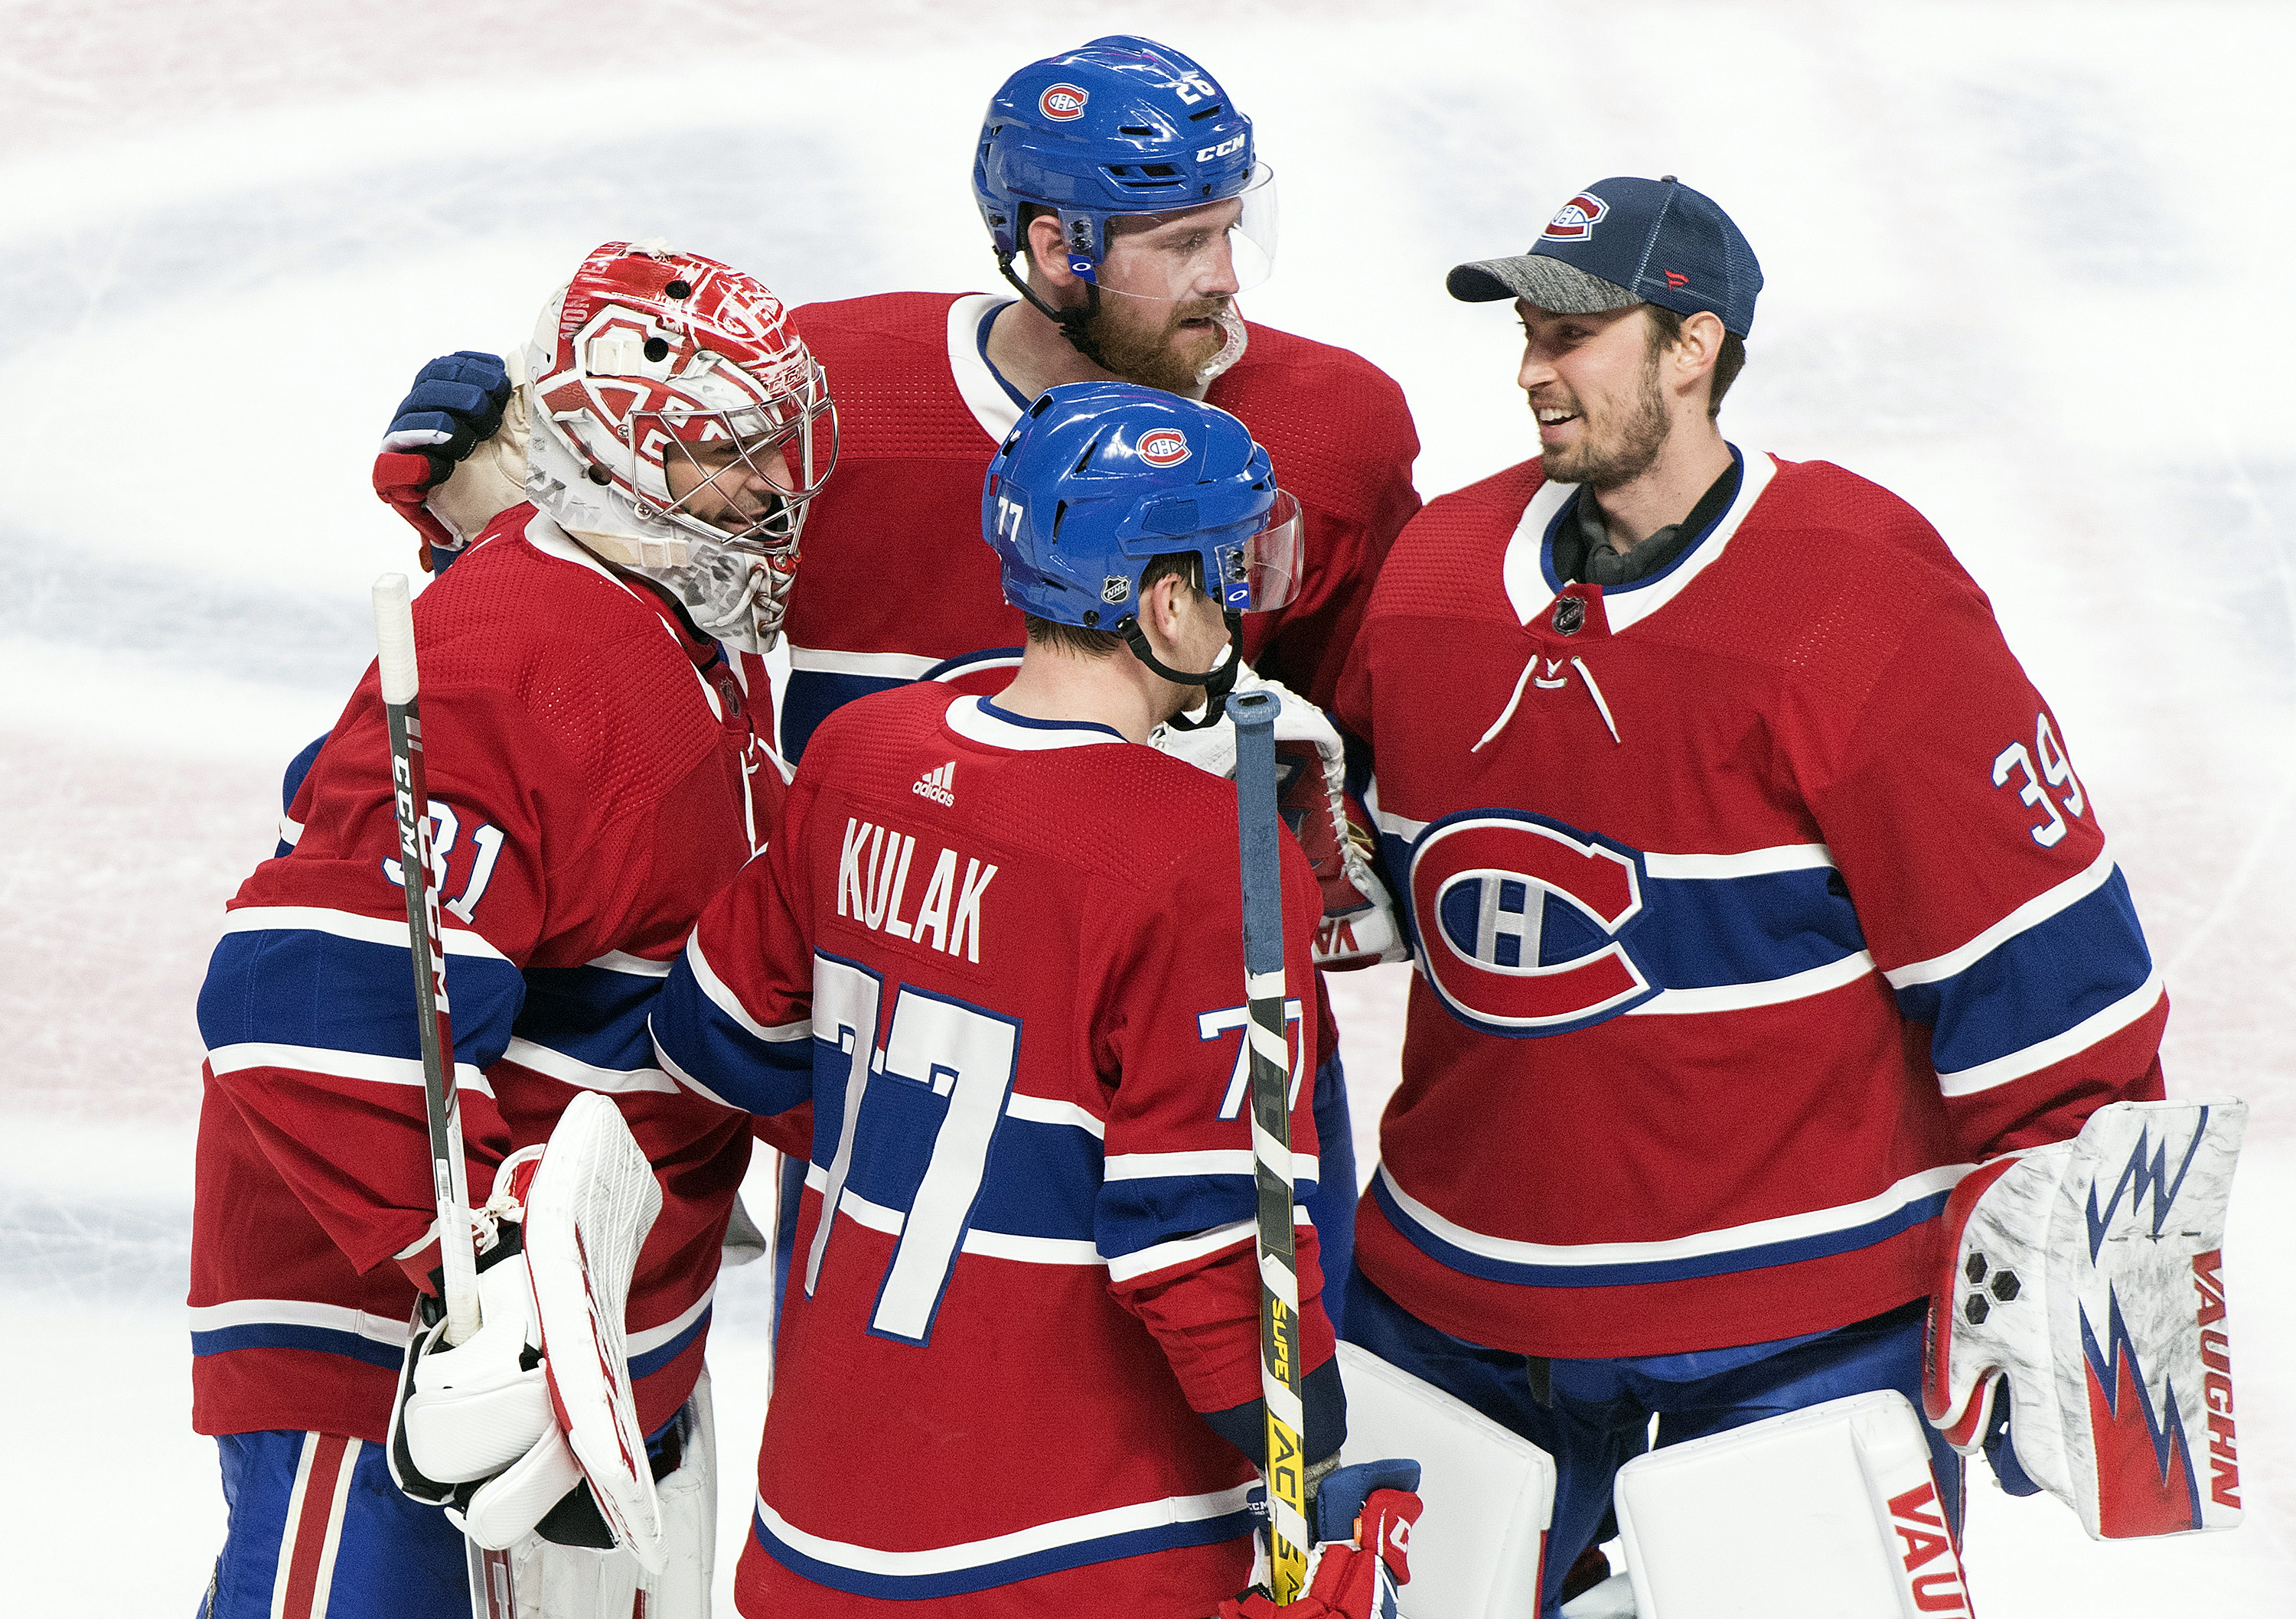 Kovalchuk scores in OT, Canadiens rally past Maple Leafs 2-1